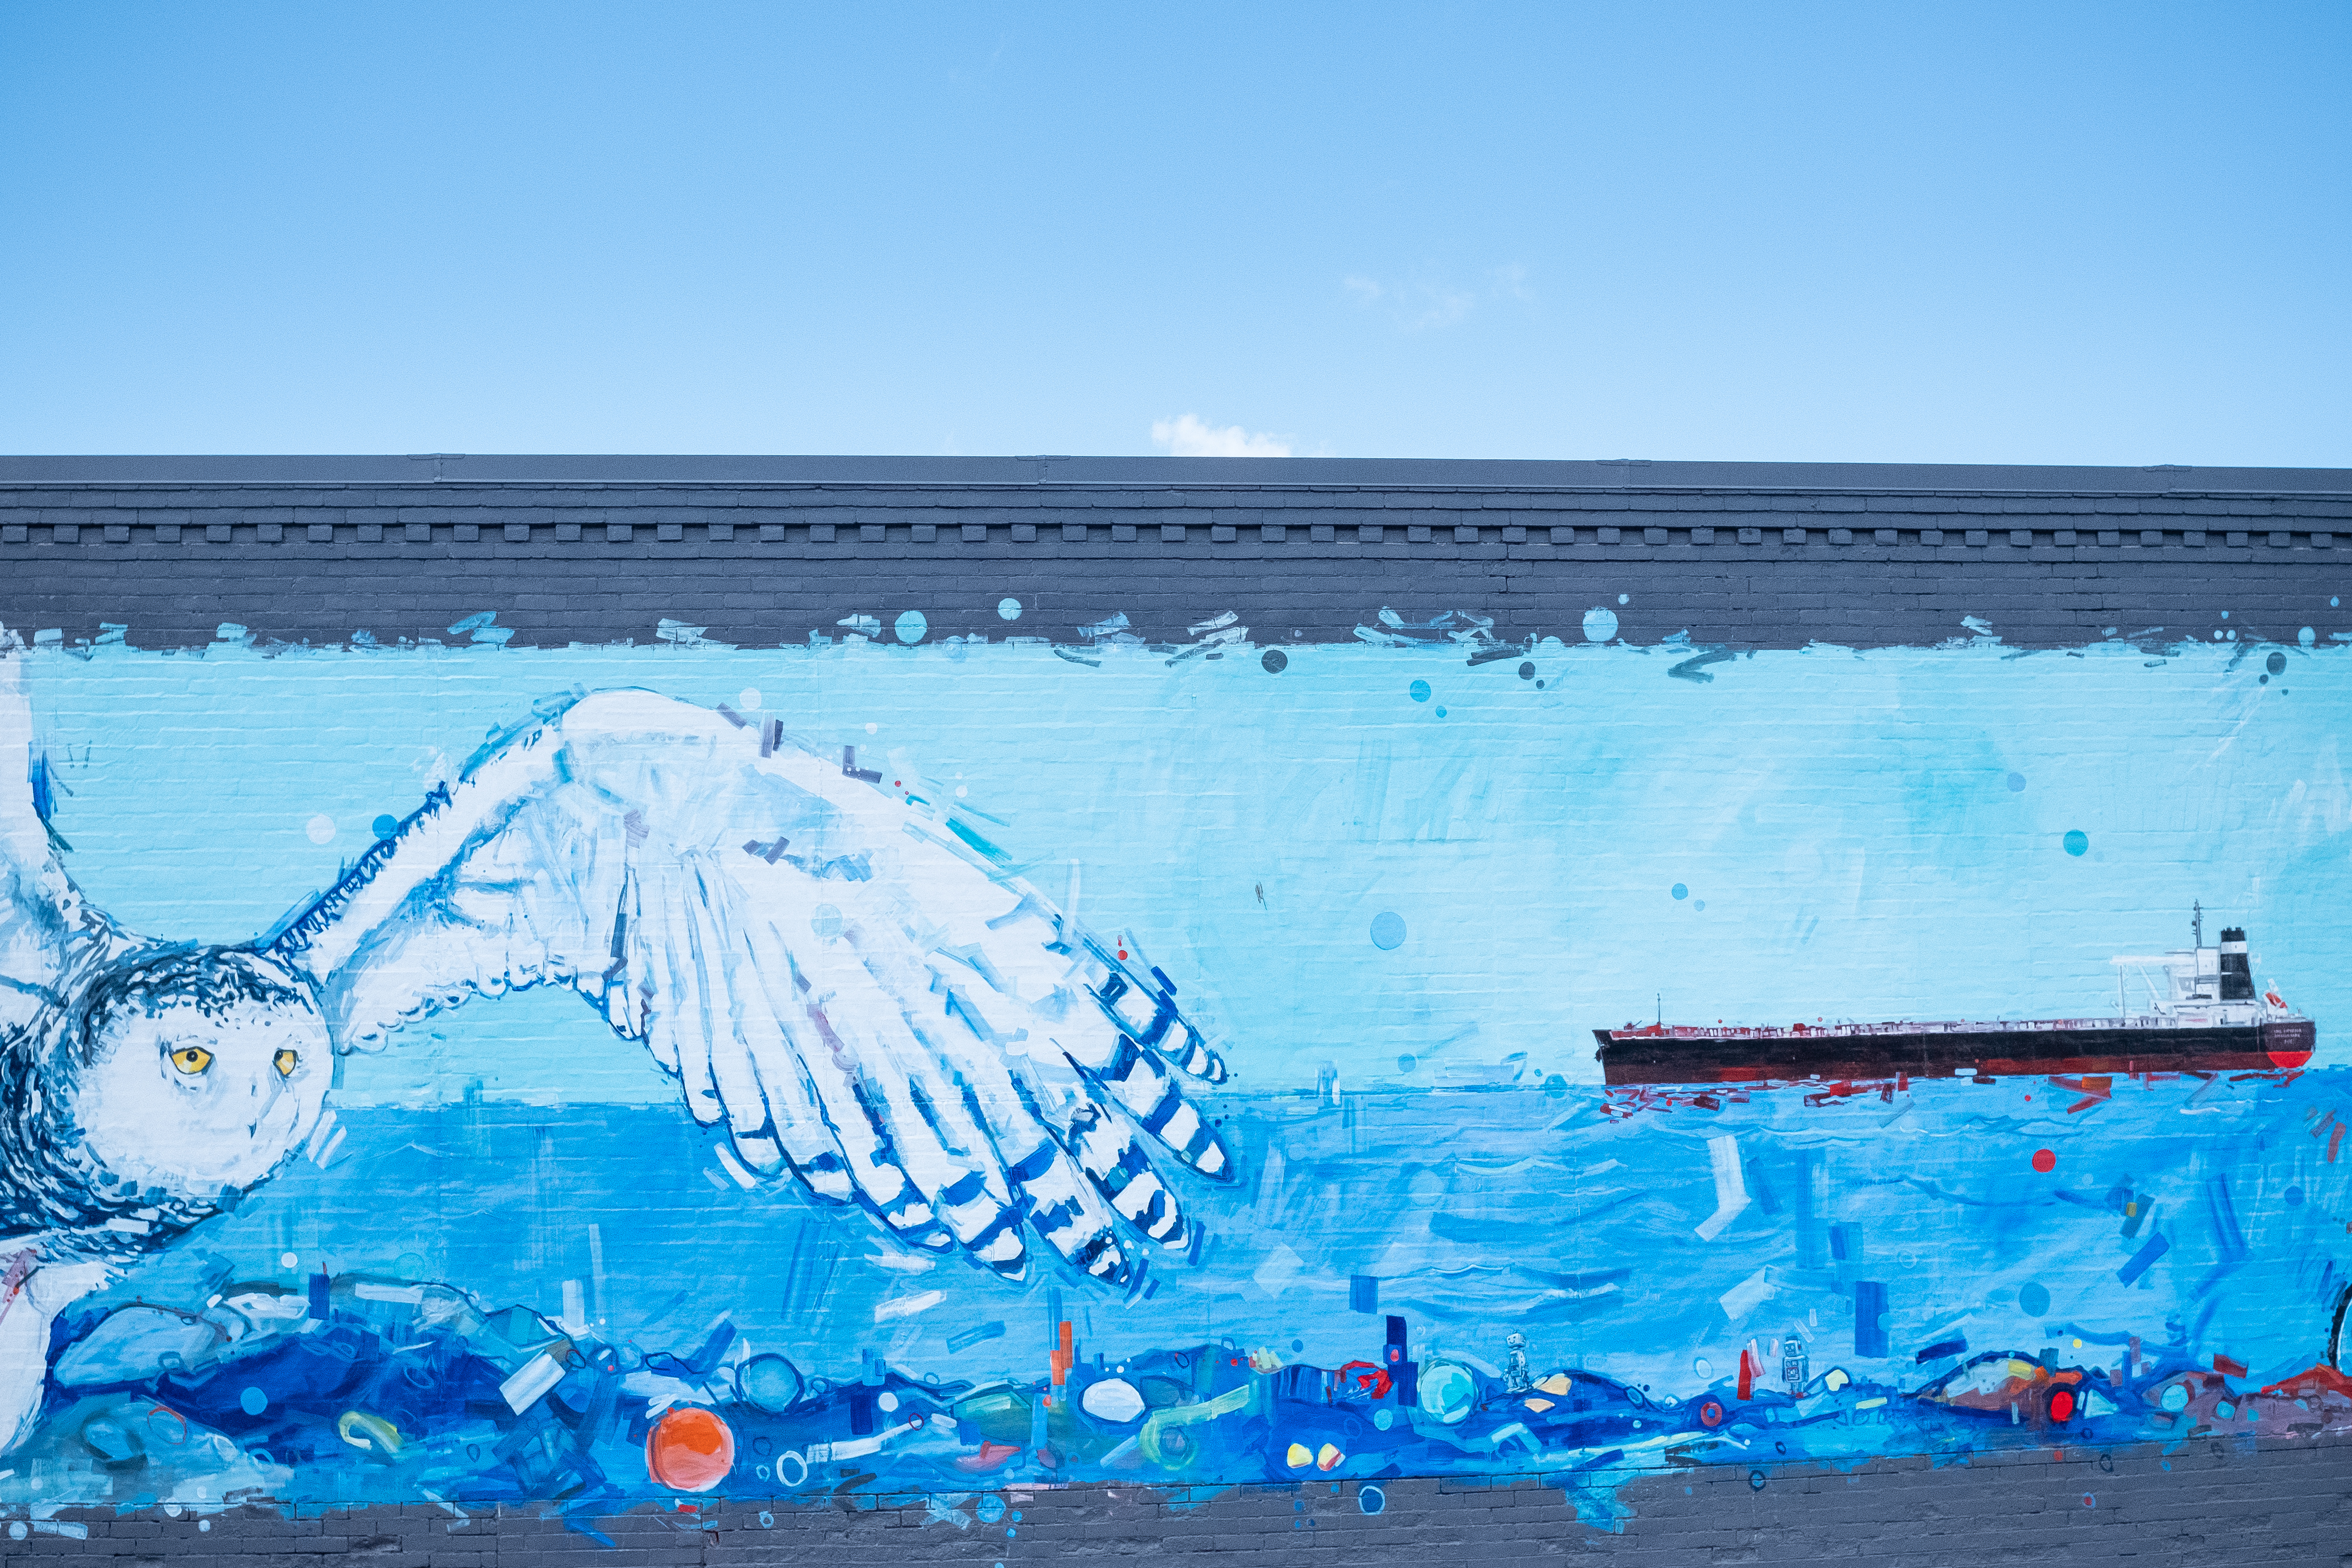 A blue-backed mural of Lake Superior with a ship and a snowy white owl in the foreground